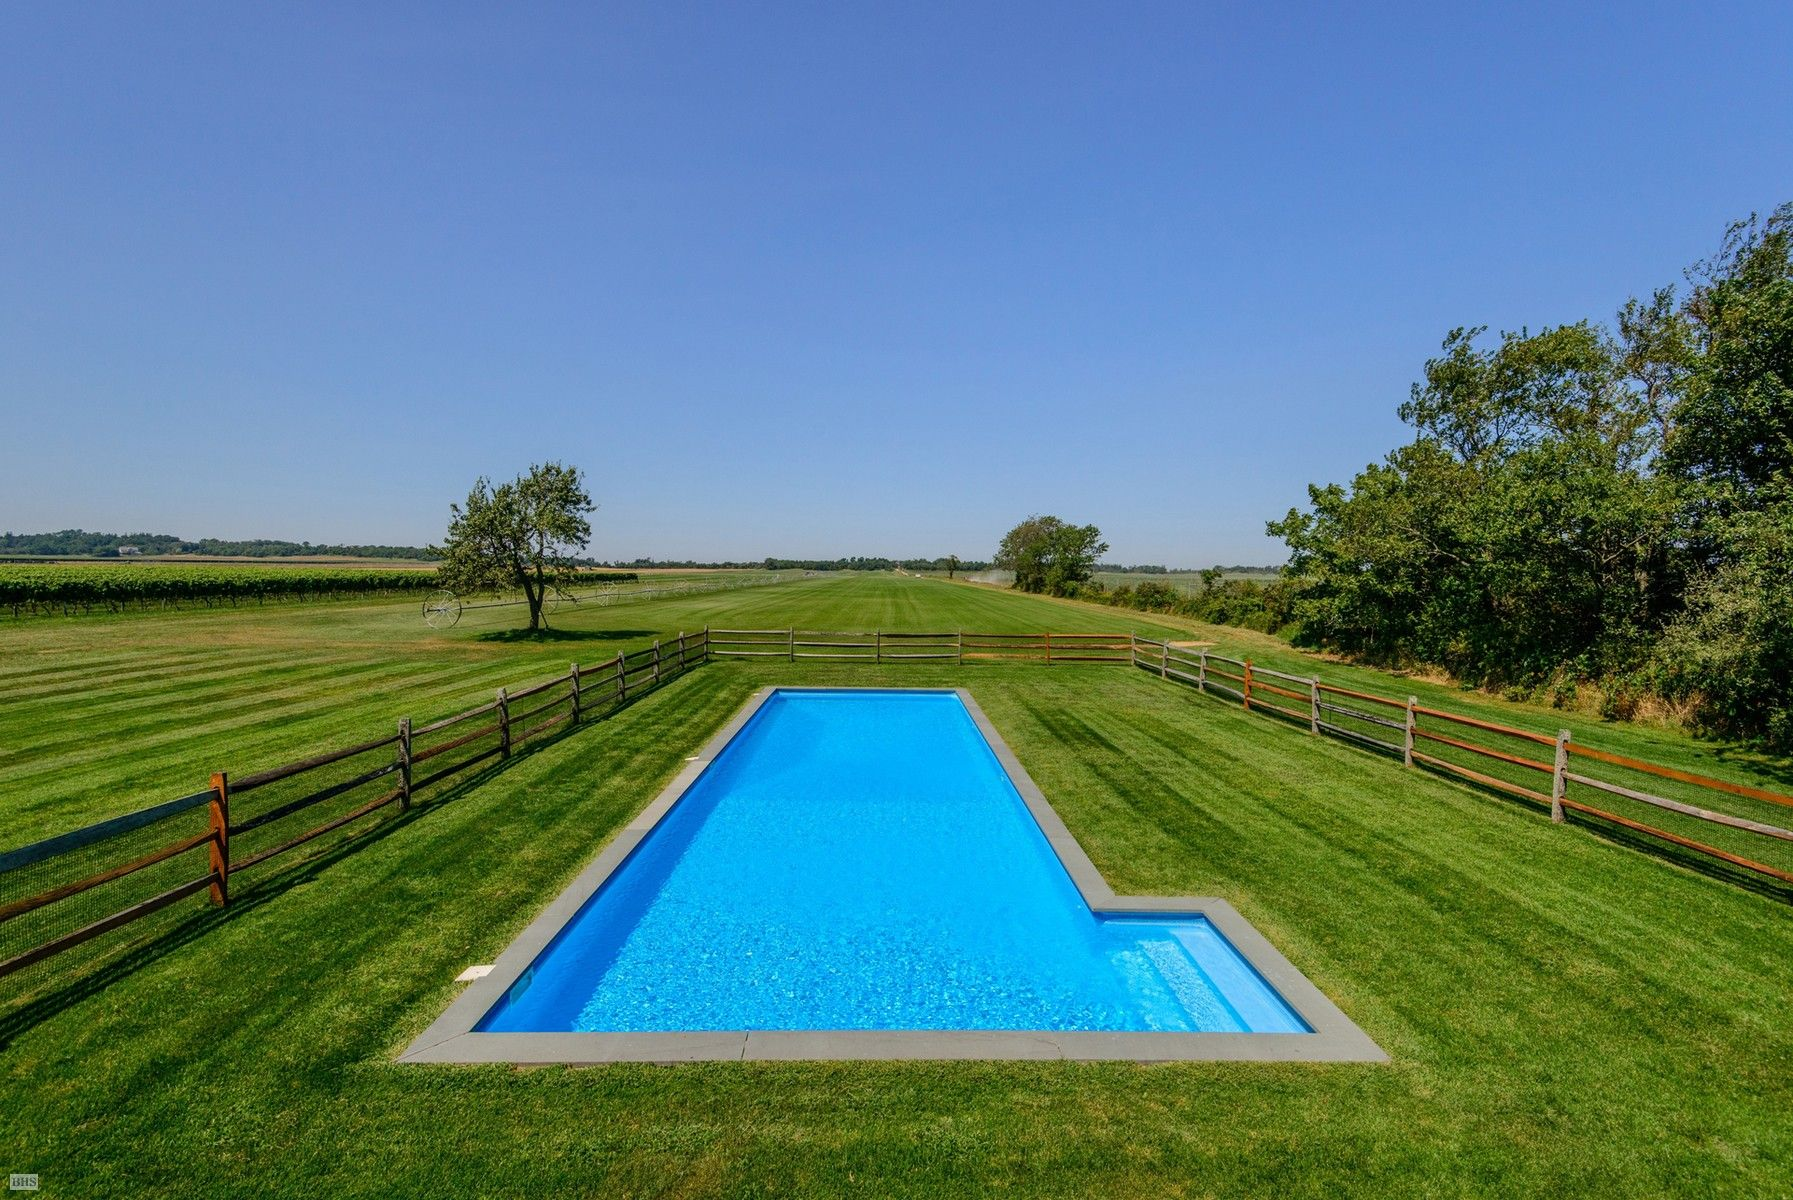 Cutchogue – This rare waterfront estate comprises a classic farmstead with 1860s farmhouse, two-story barn with modern poolhouse, pool and detached art/exercise studio, along with 32 acres of preserved farmland, including a 5+ acre vineyard. Also included are three separate buildable parcels overlooking Long Island Sound, two waterfront and one...